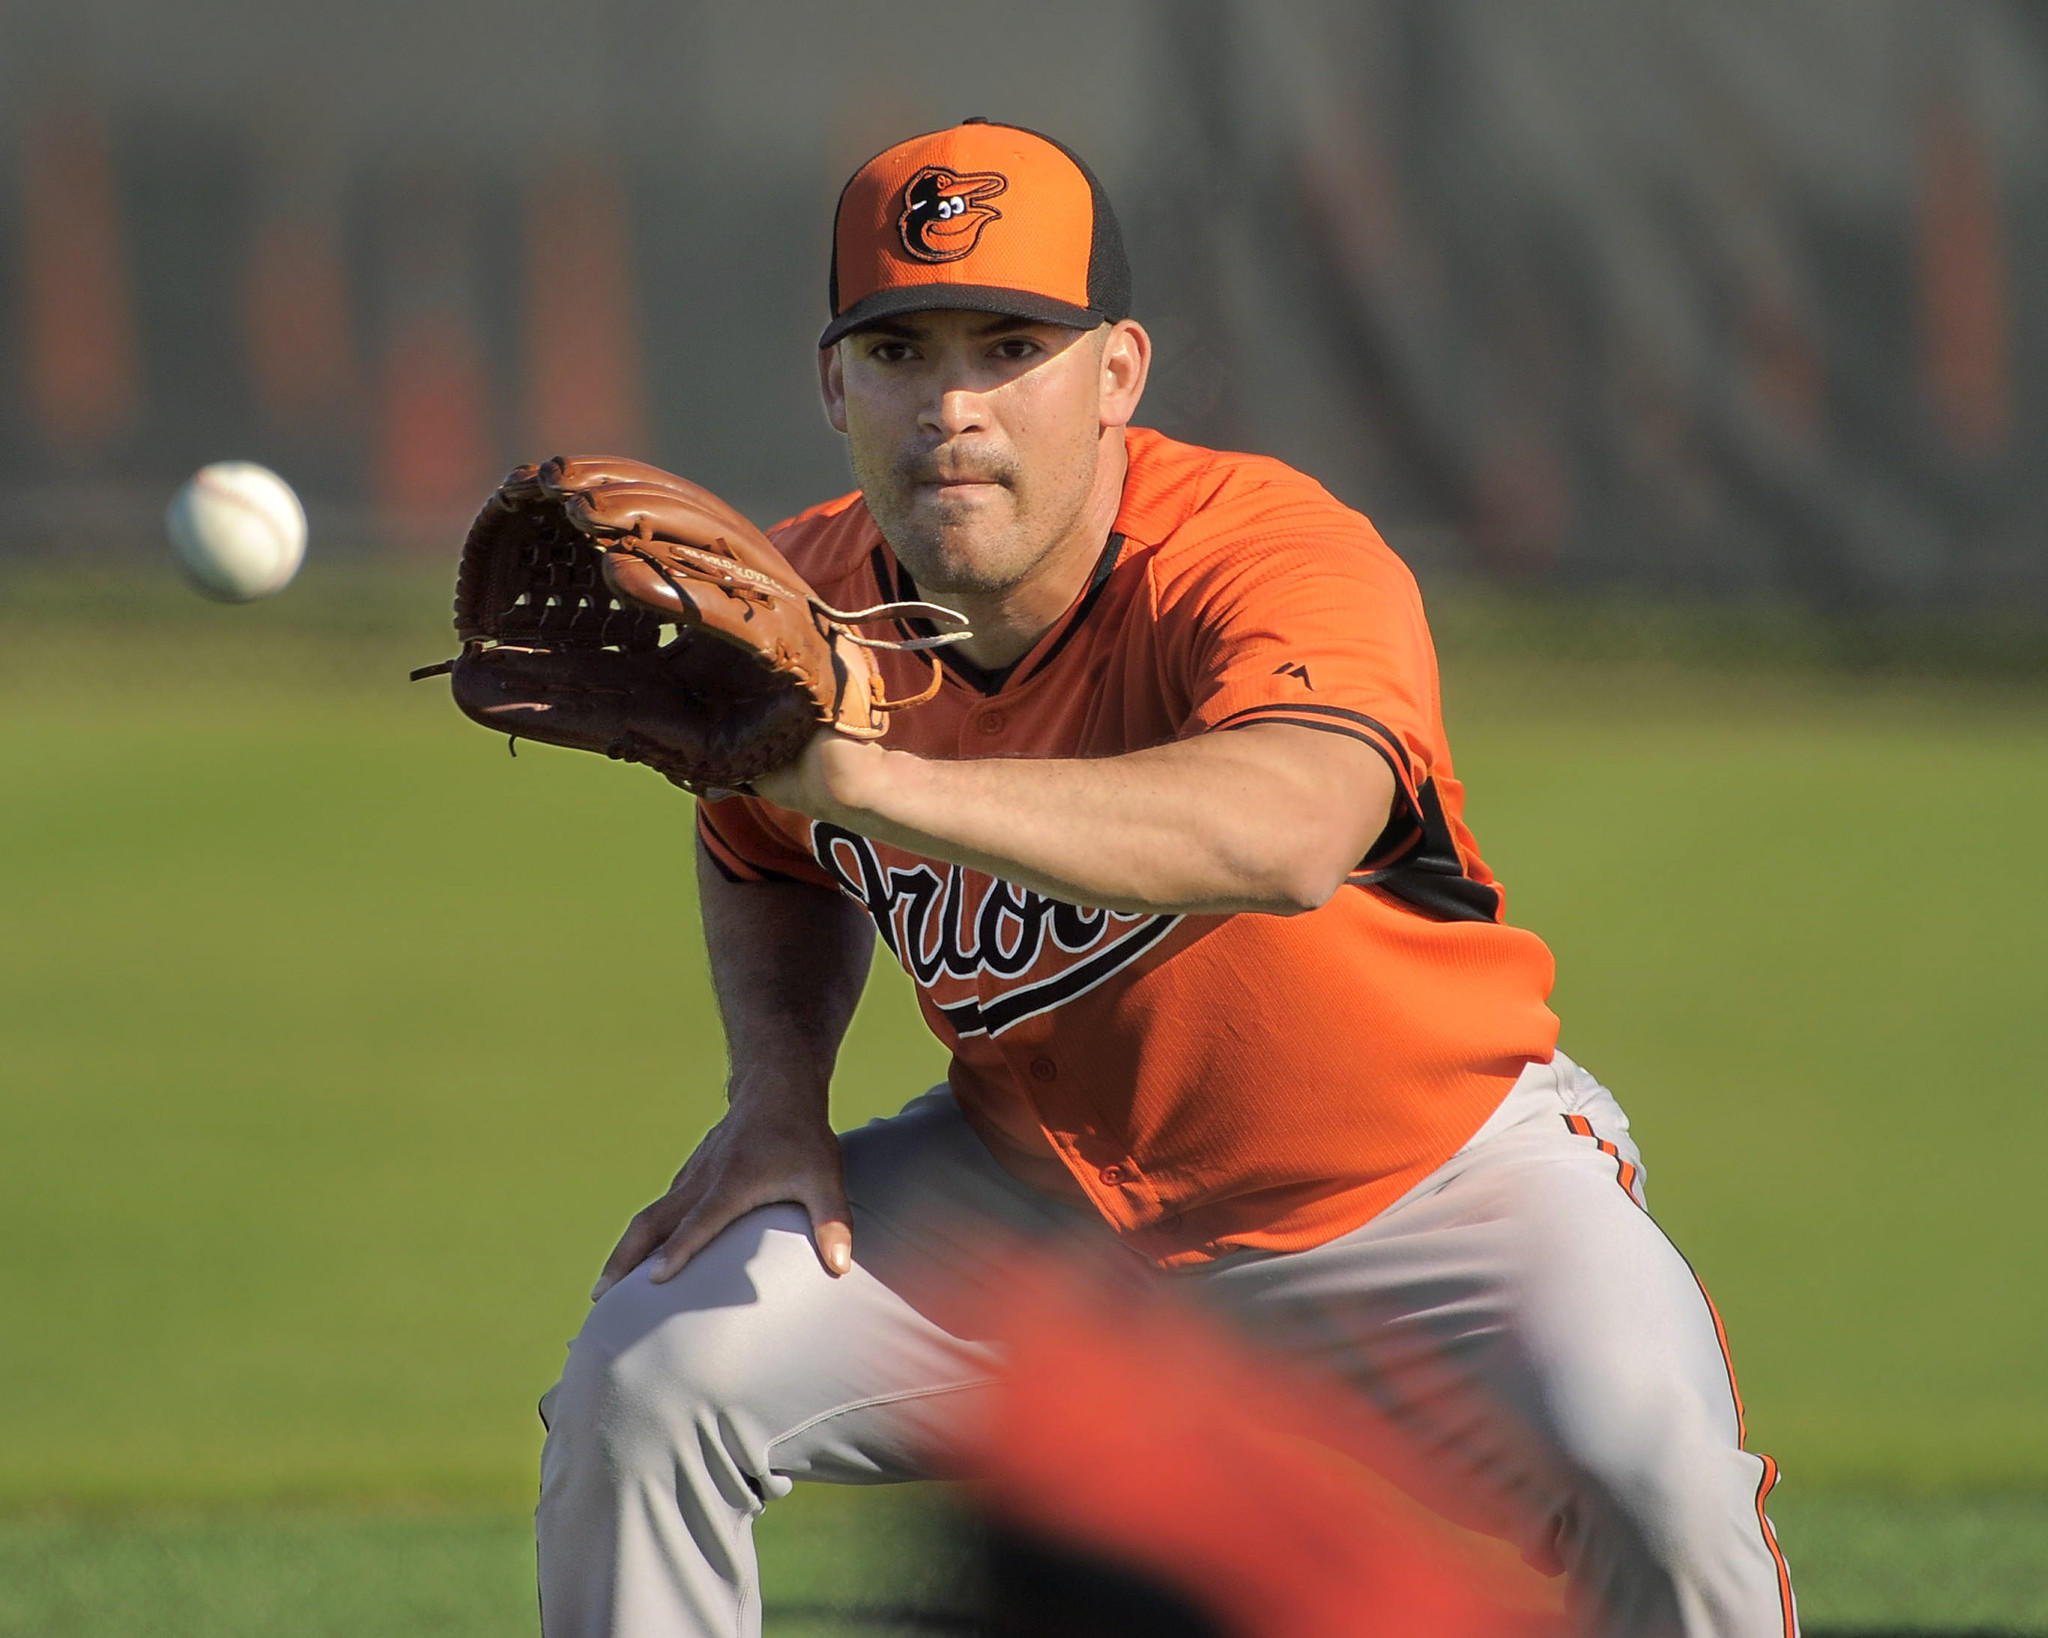 Baltimore Orioles pitcher Eddie Gamboa warms up during workouts at the Orioles' spring training facility.